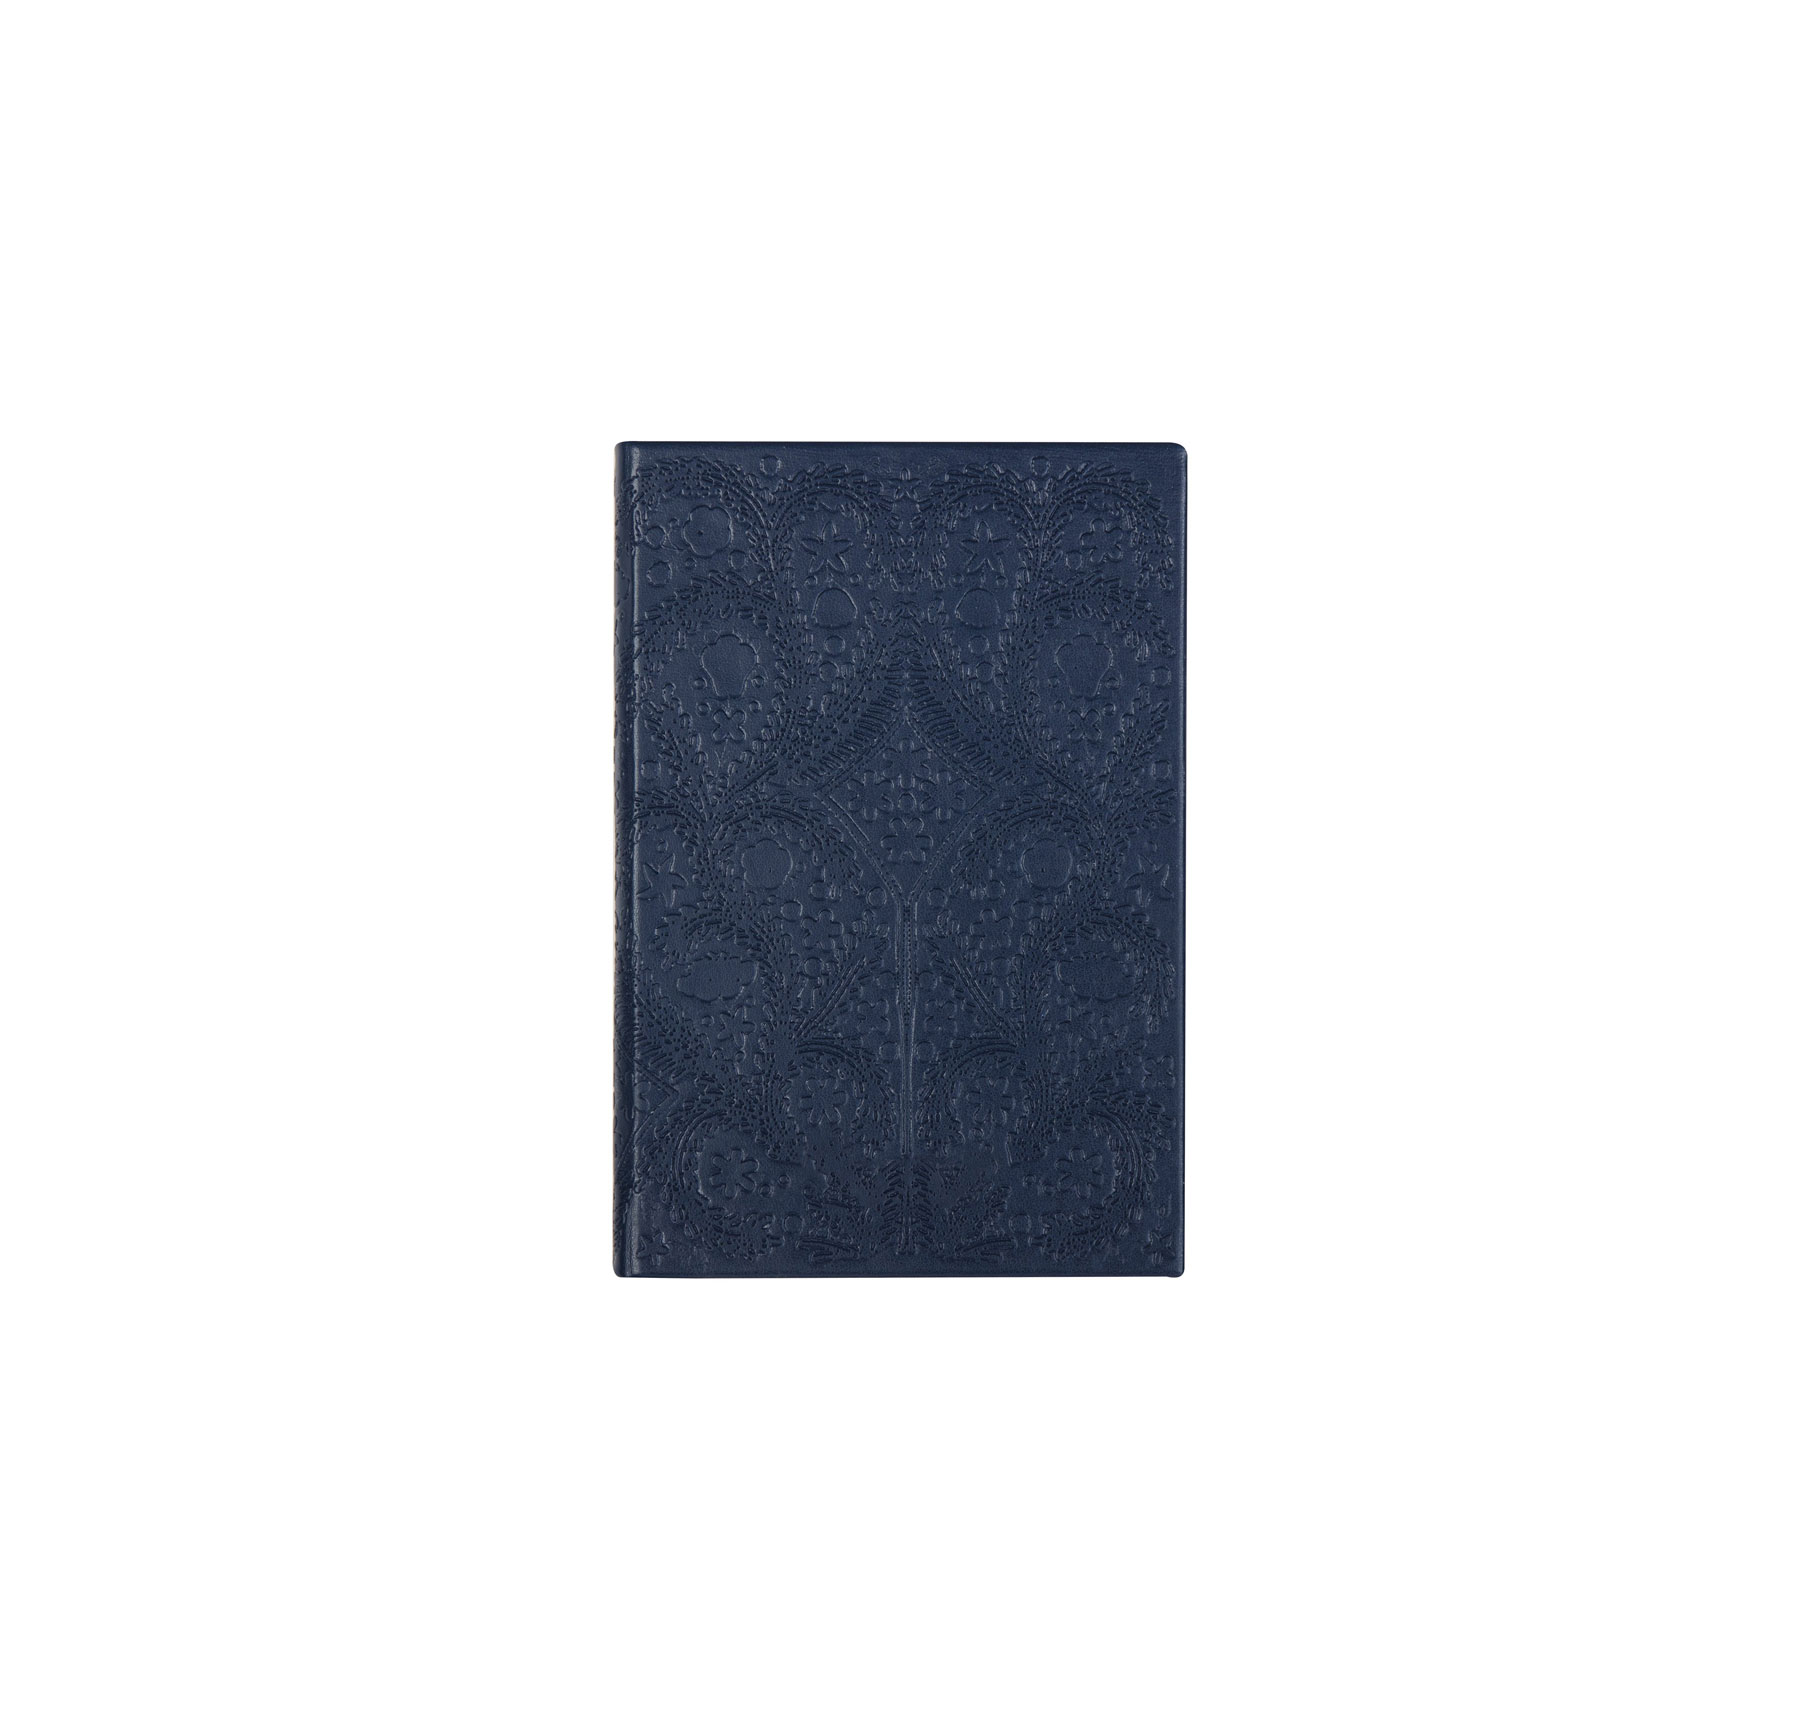 2019 Daily, Weekly, and Monthly Planners Christian Lacroix Navy Embossed Paso Undated Agenda